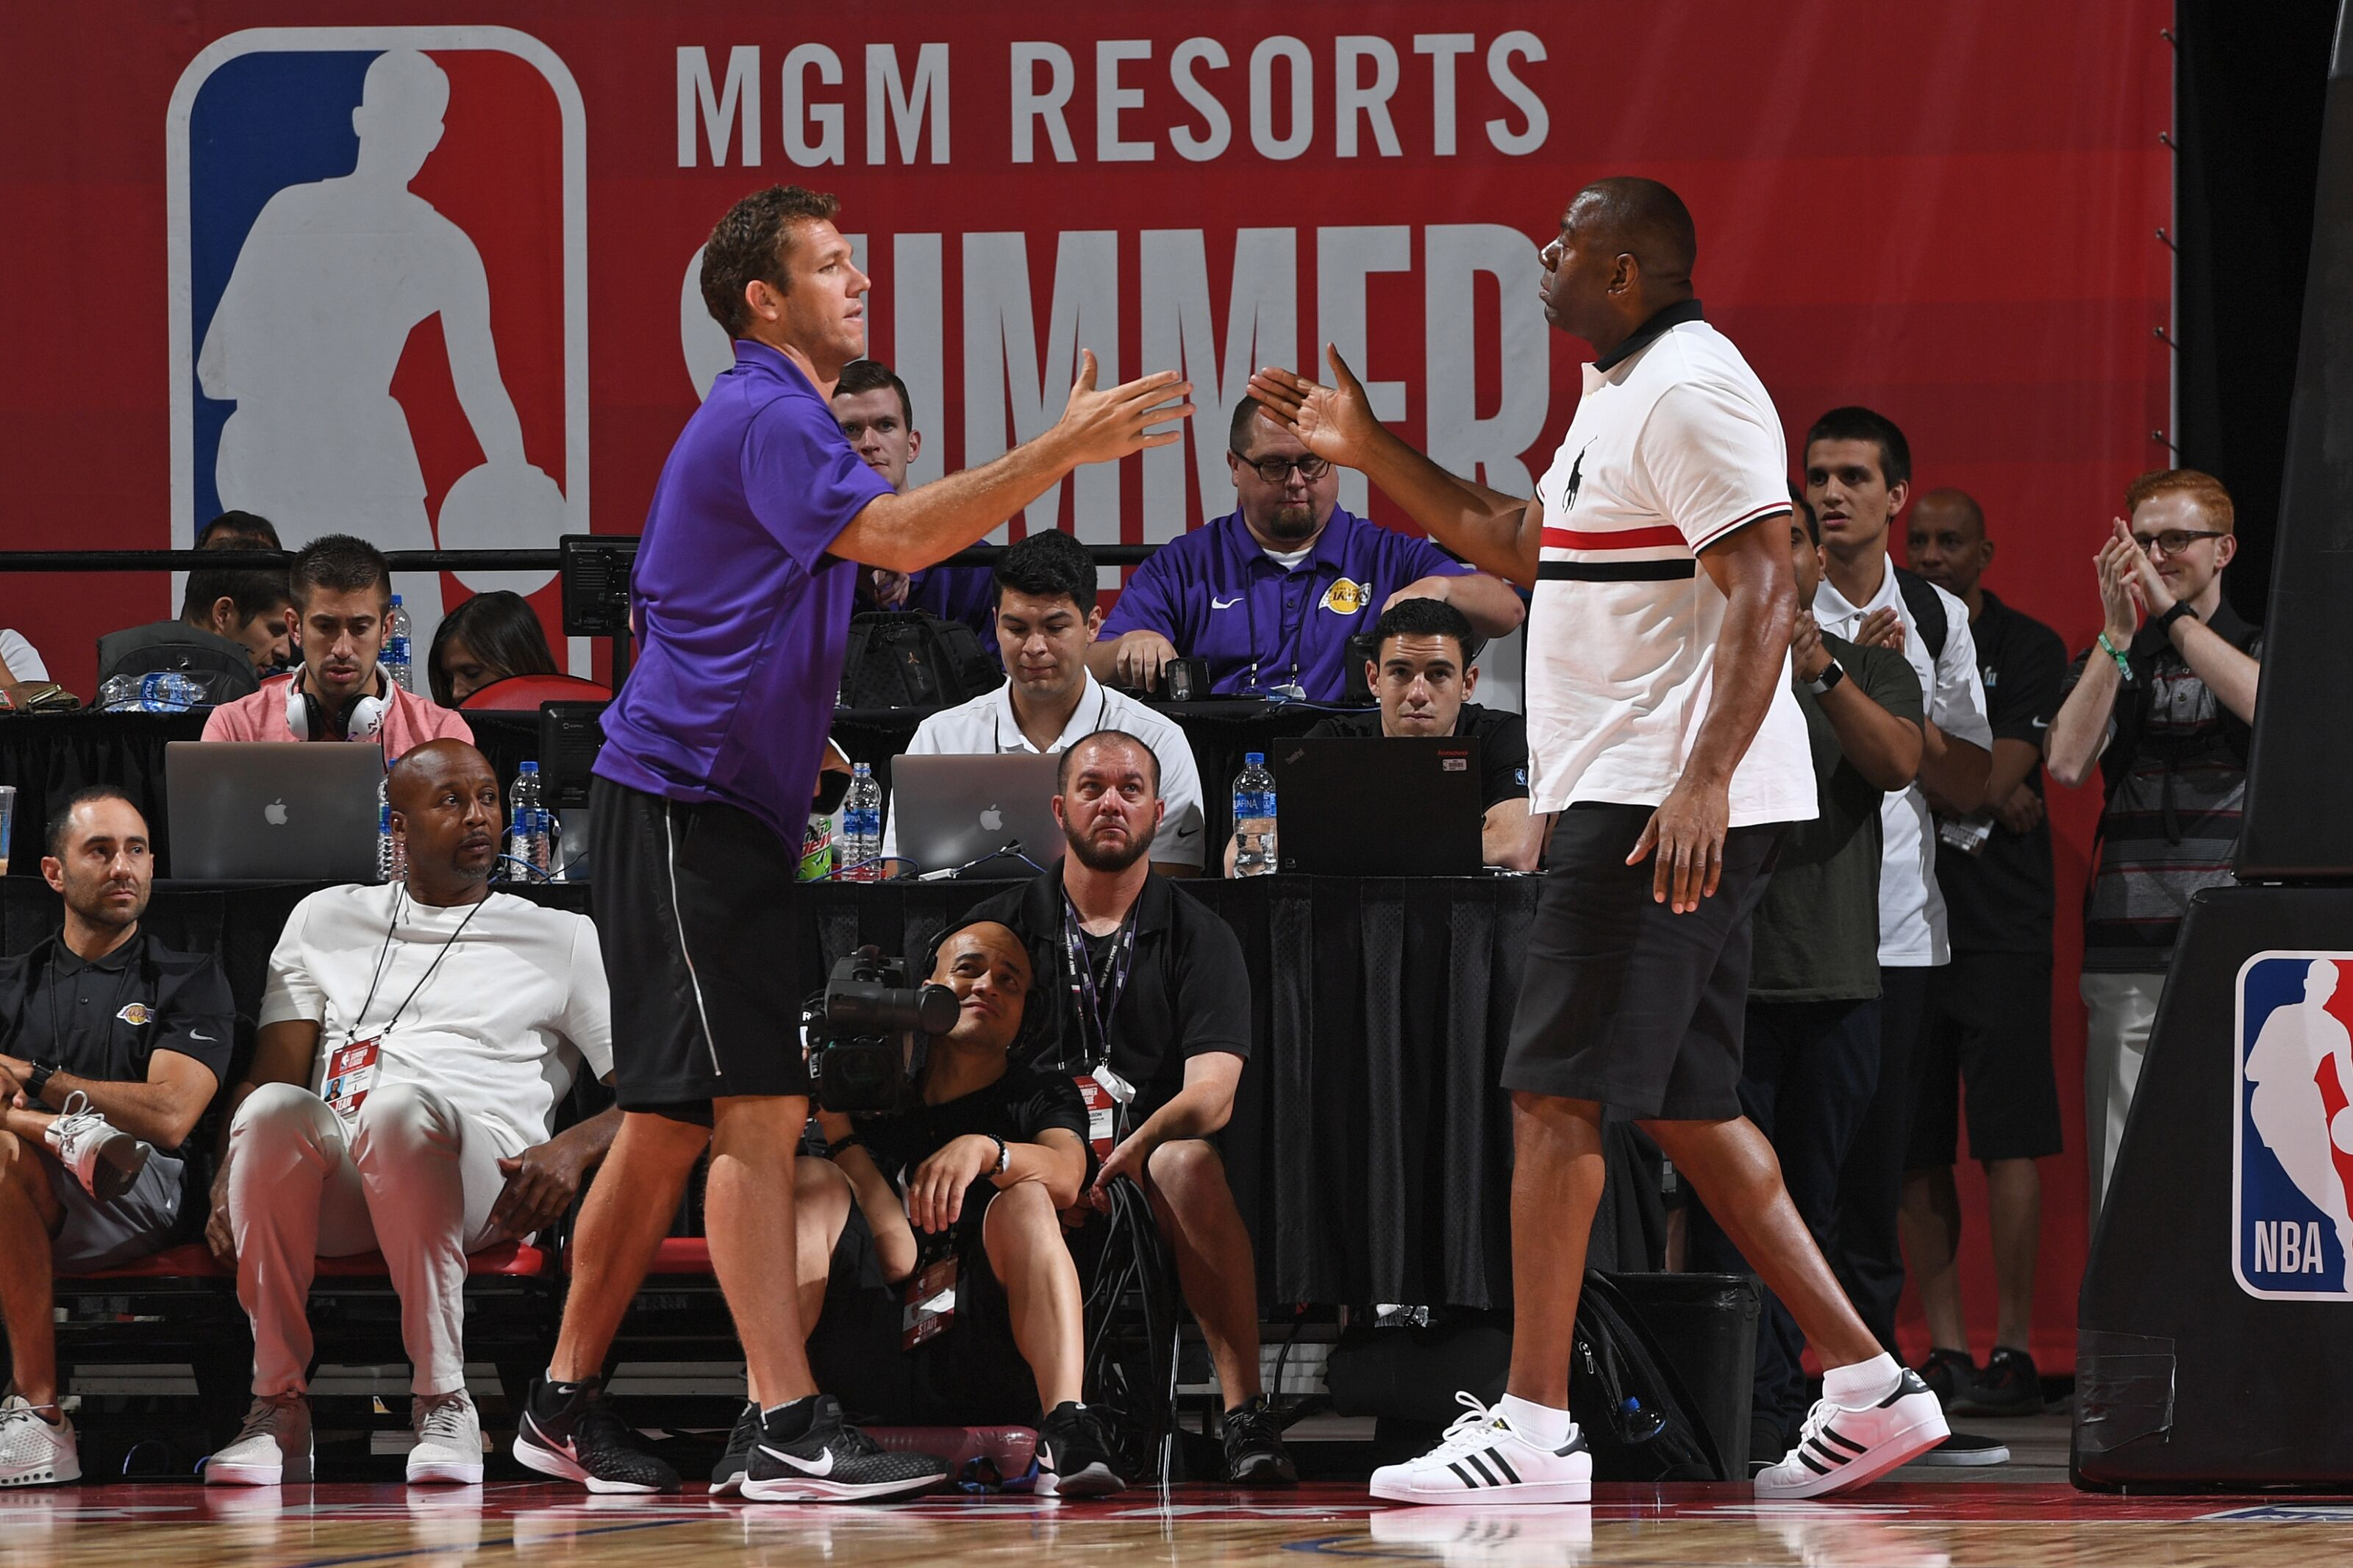 Lakers Rumors: No immediate plans to fill open roster spot